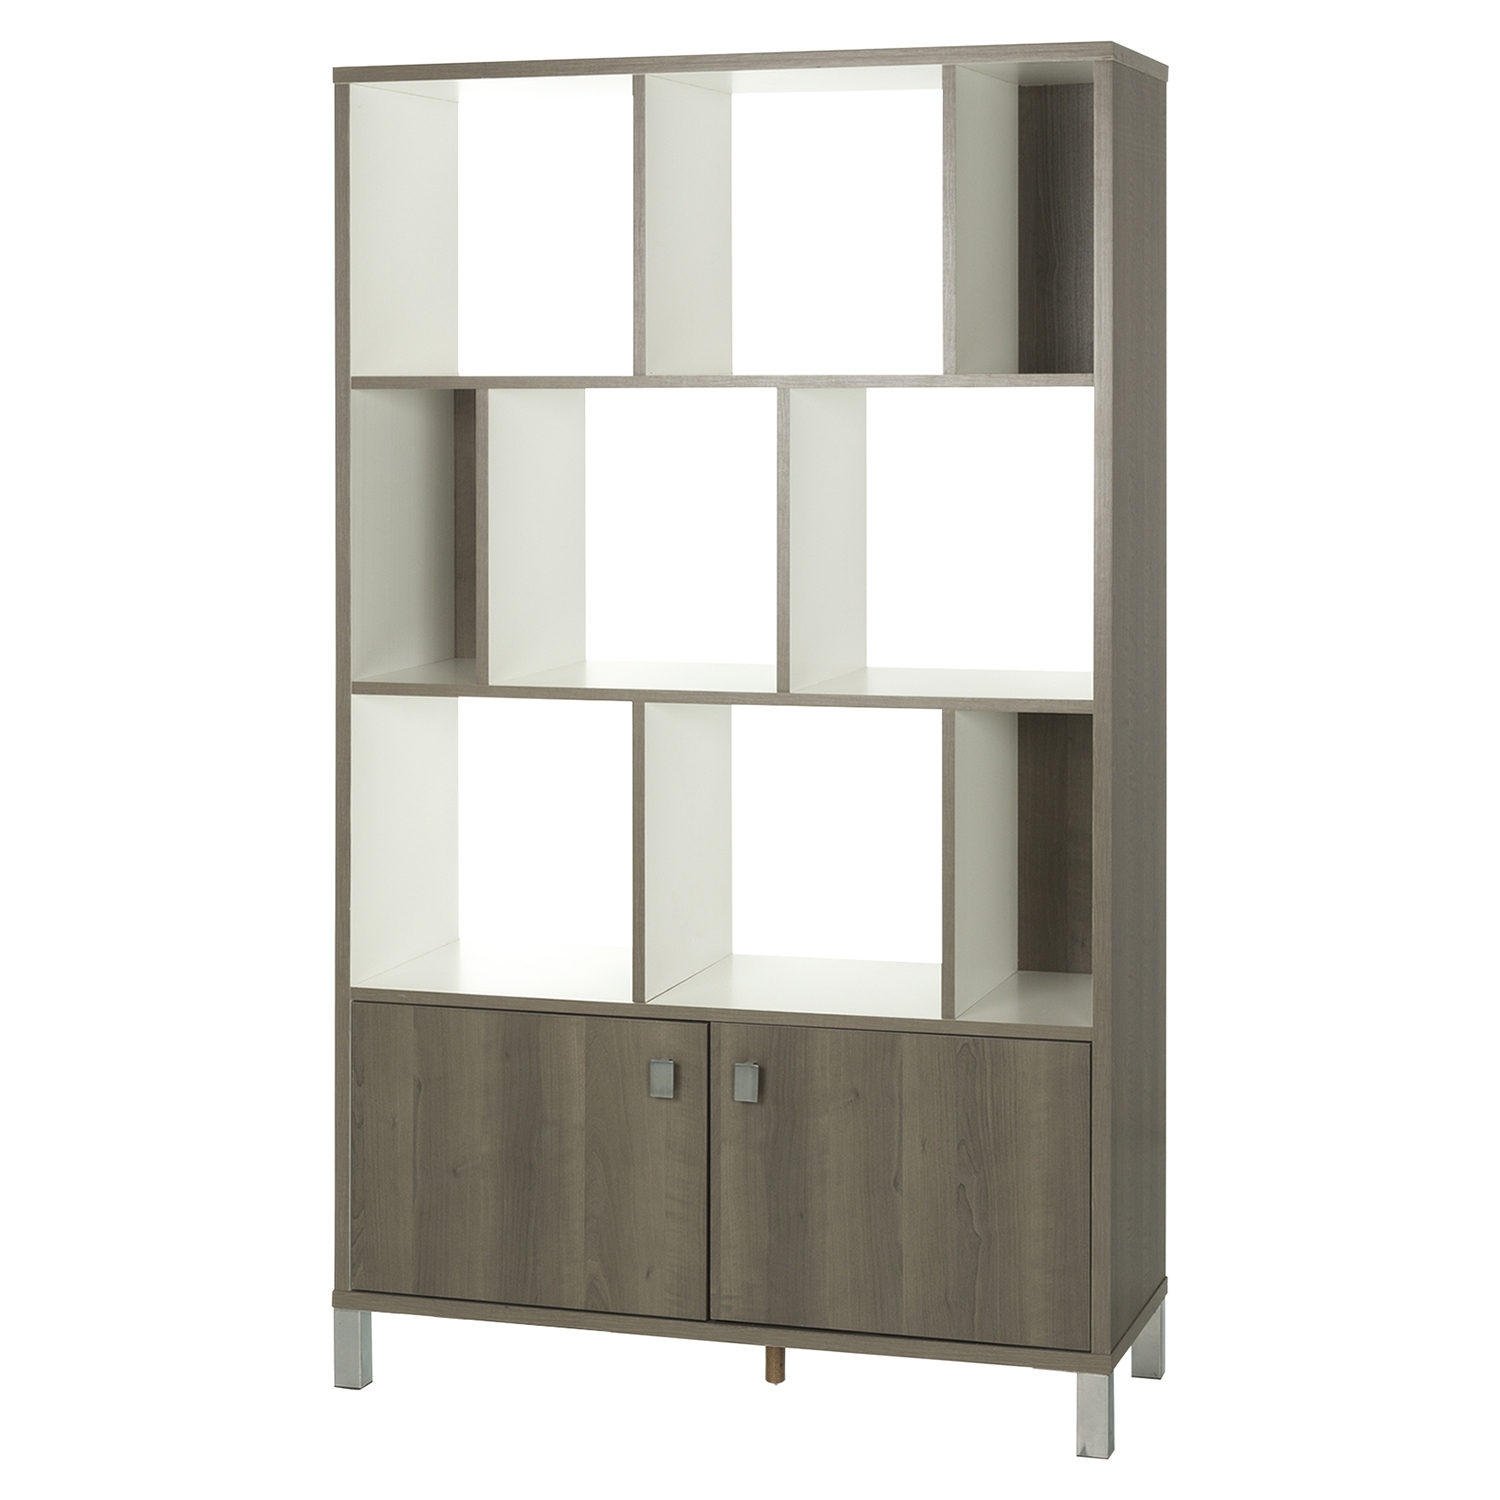 Expoz 9 Cubes Shelving Unit - Doors, Gray Maple, Pure White - SS-10170